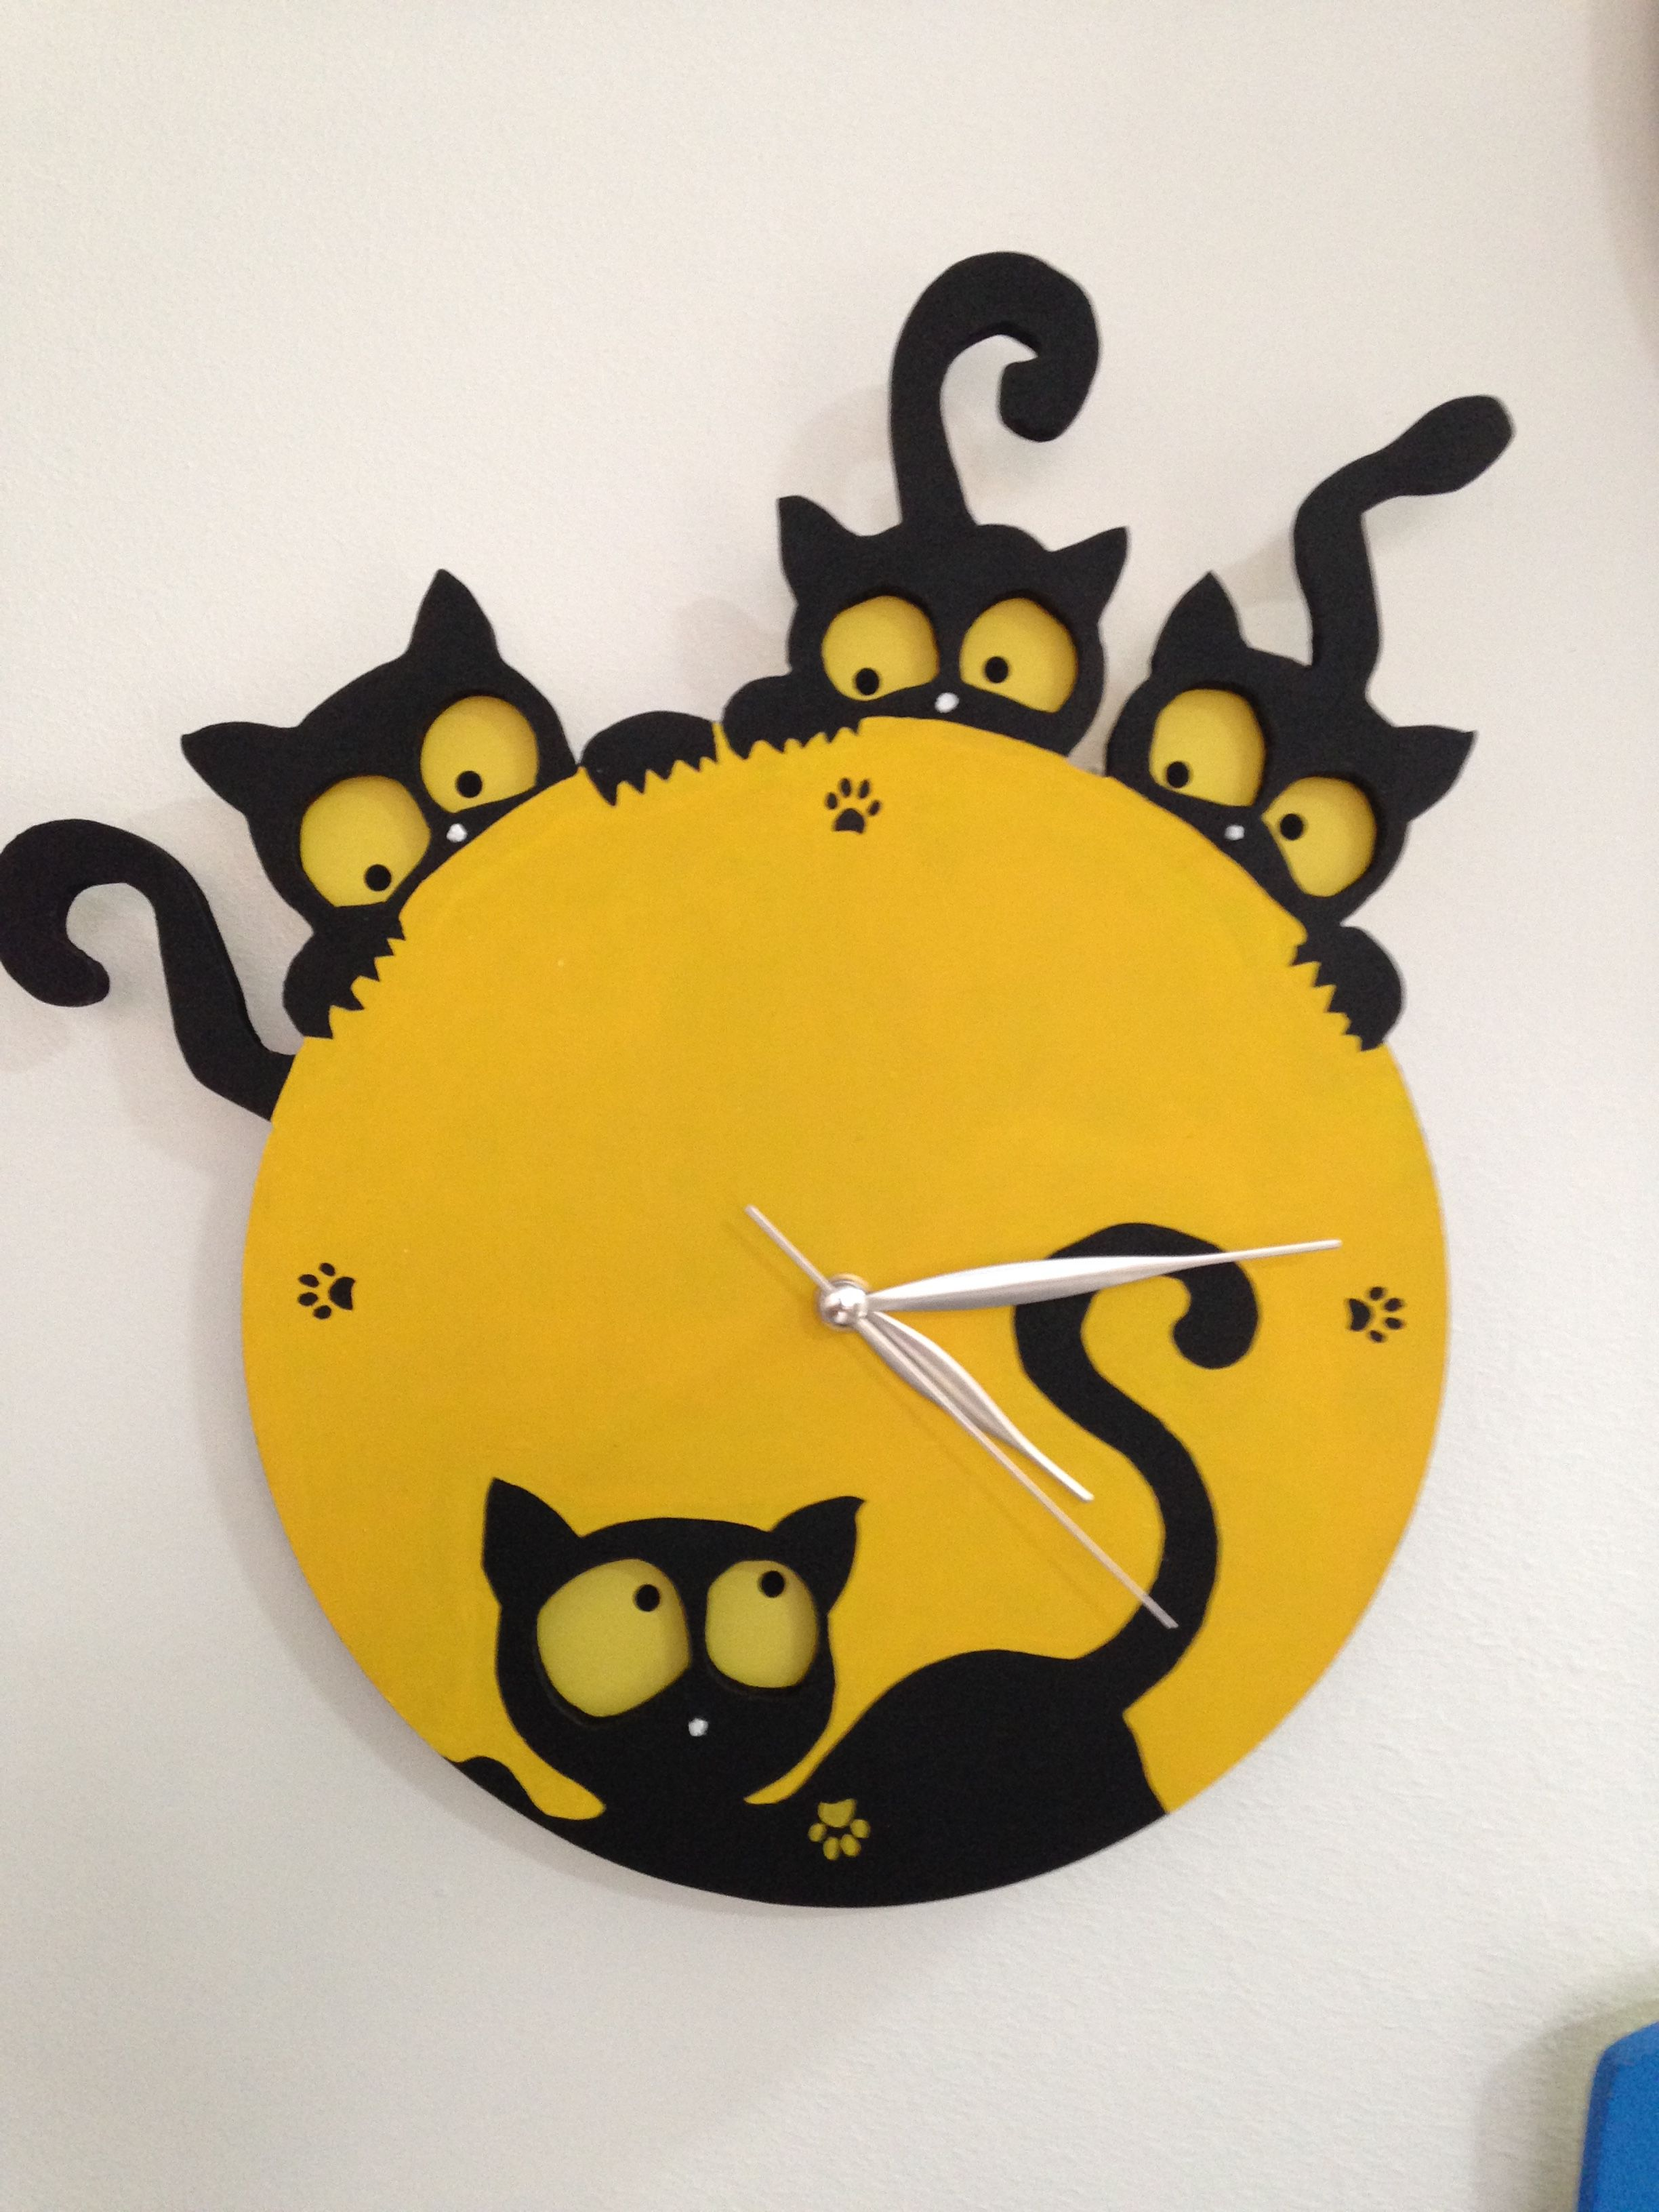 Pin by GÜLSEN on Ahşap | Pinterest | Clocks, CNC and Wall clocks